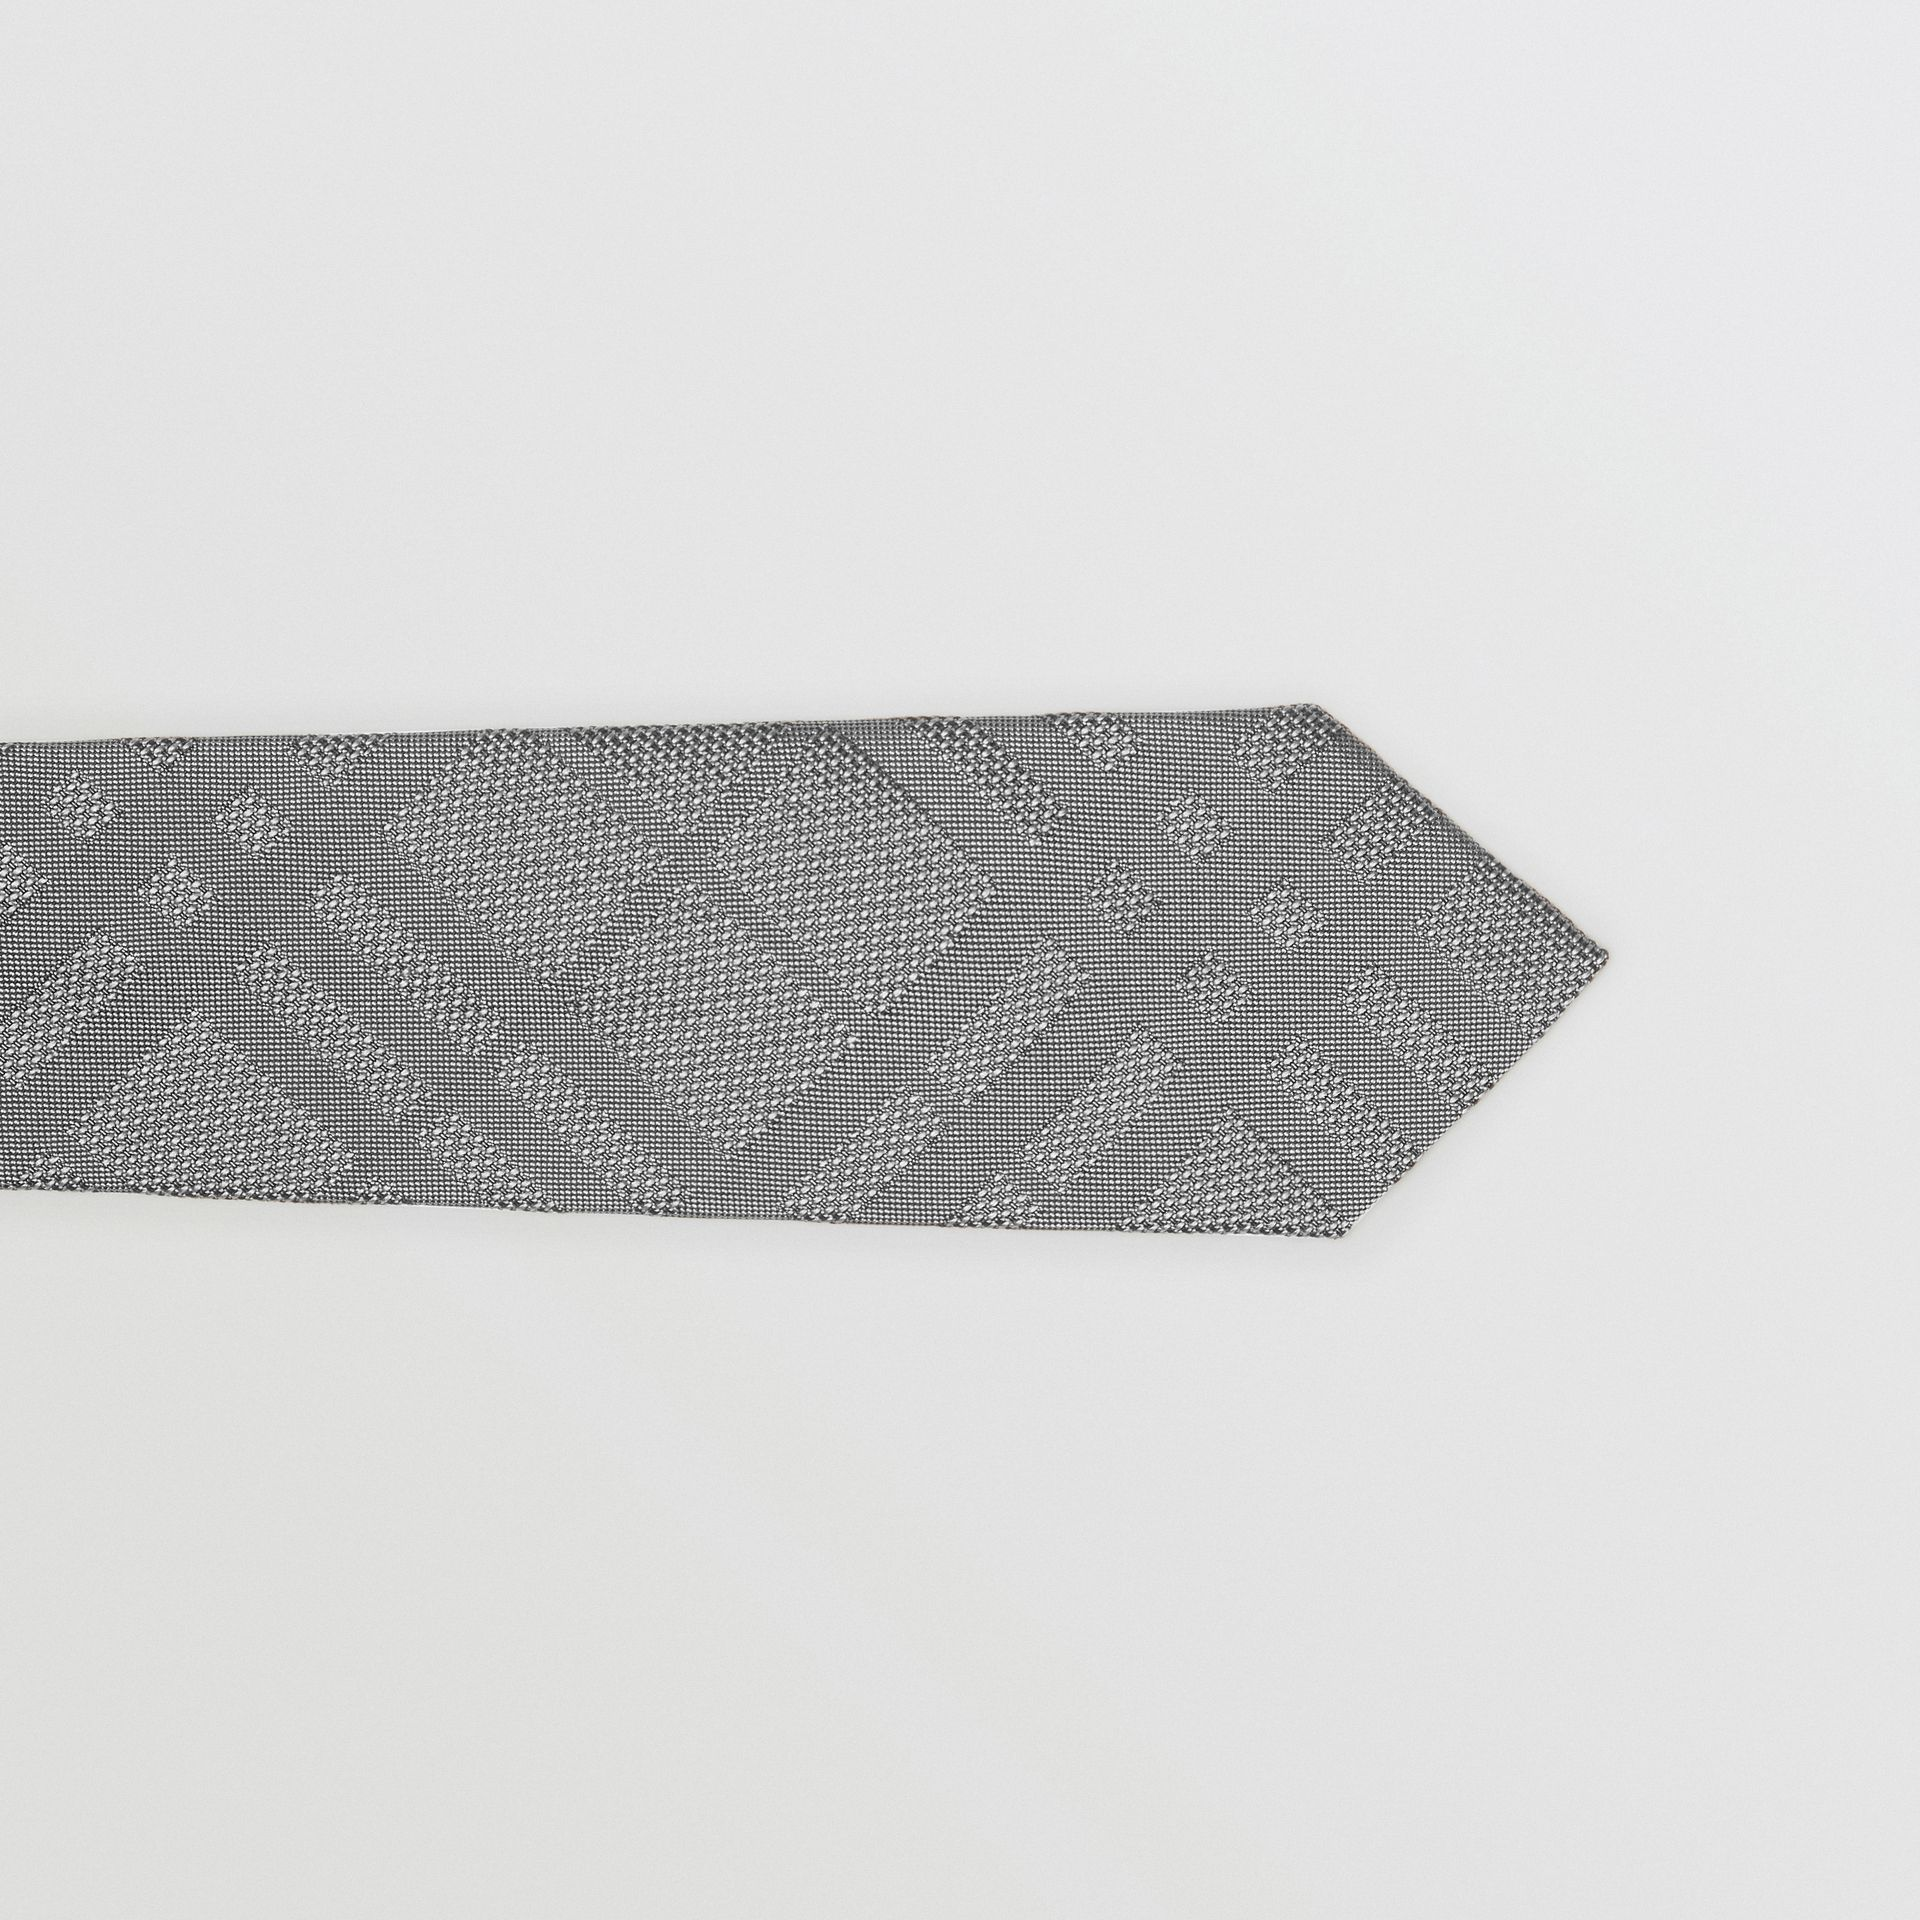 Classic Cut Check Silk Jacquard Tie in Charcoal - Men | Burberry Singapore - gallery image 1